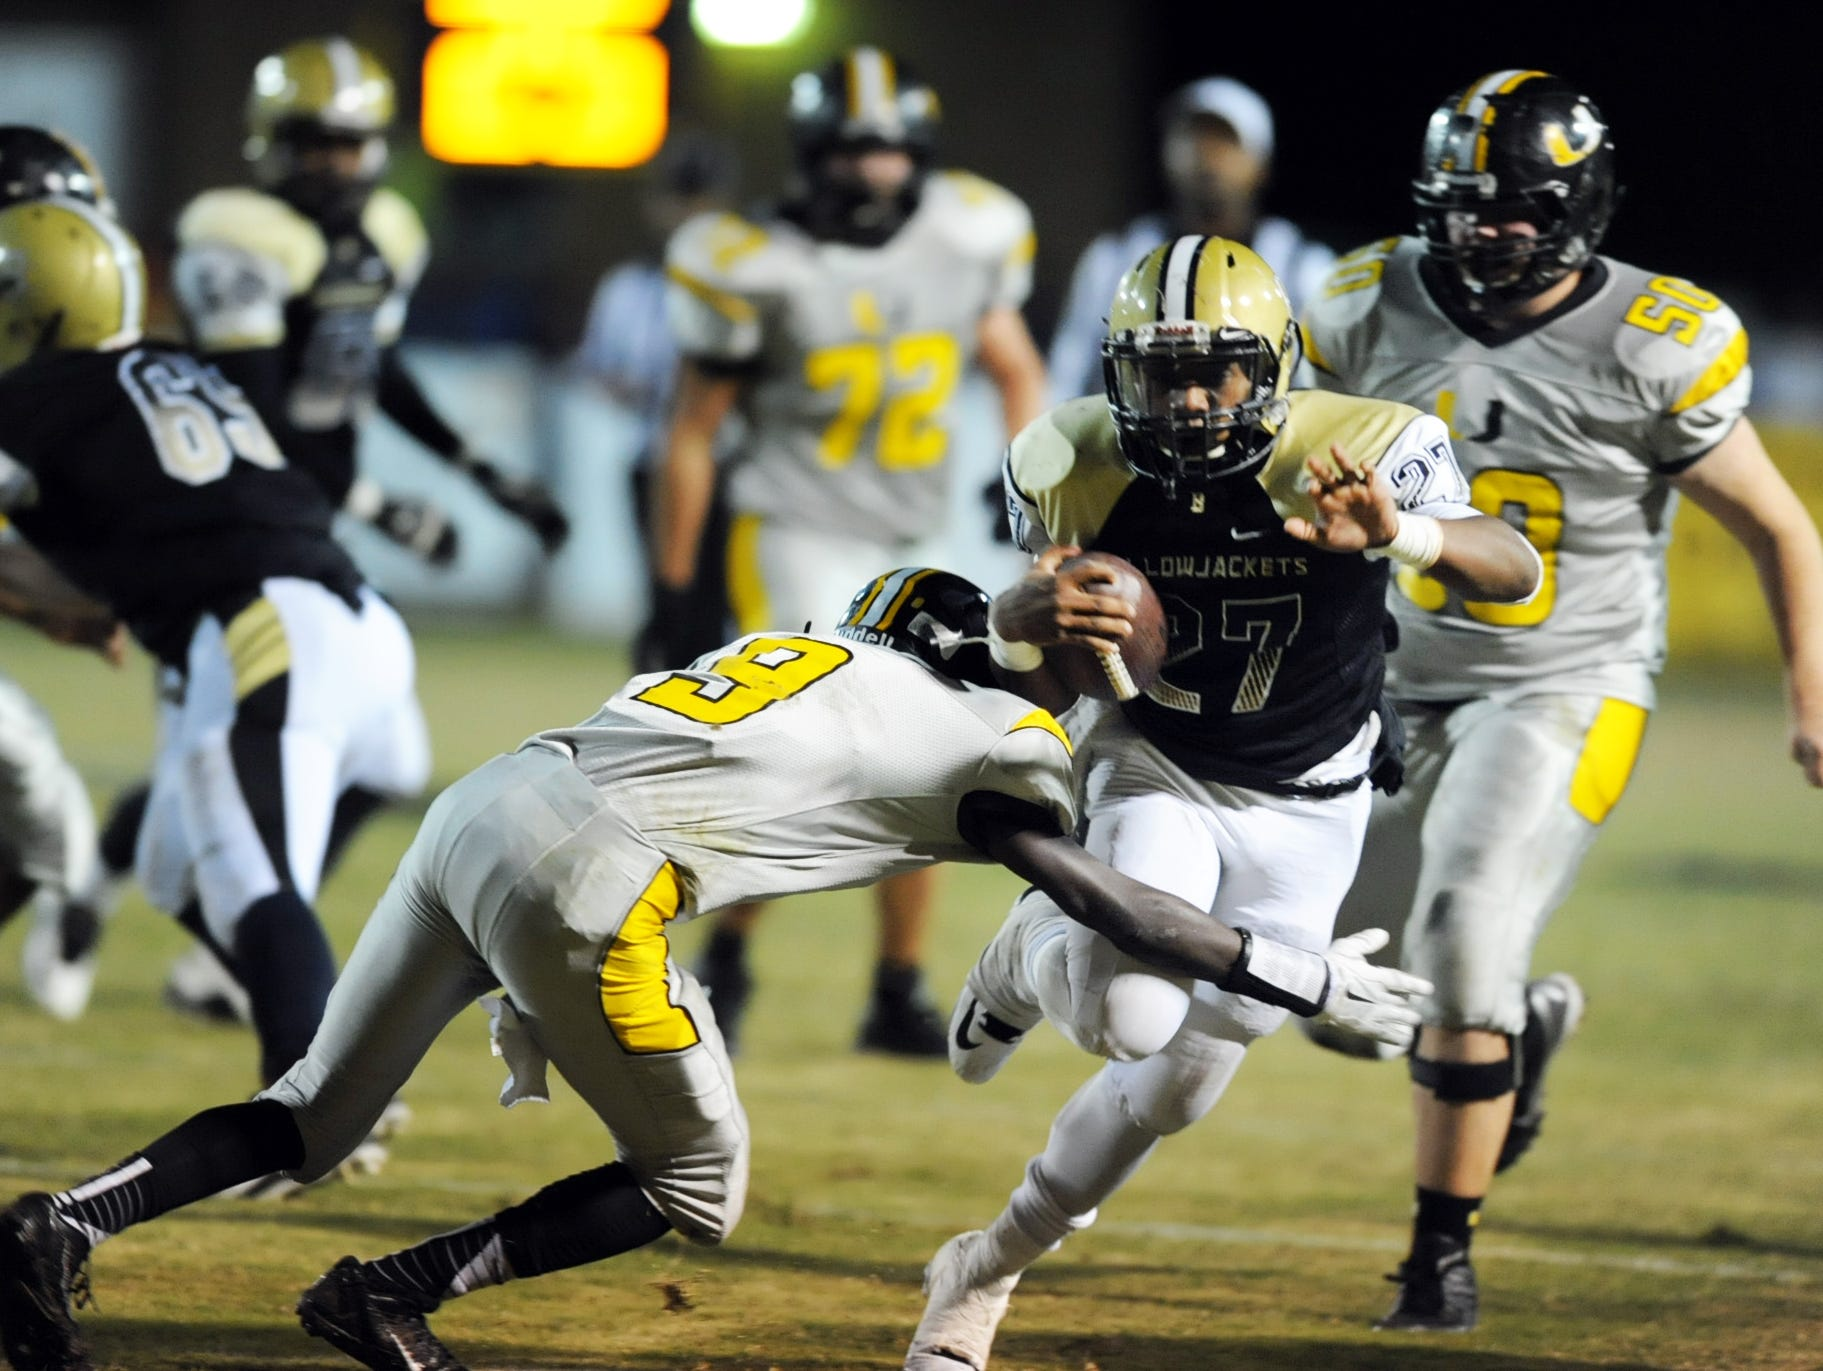 Few teams have been able to slow down Bassfield. East Webster aims to top the defending Class 2A champion this Friday.